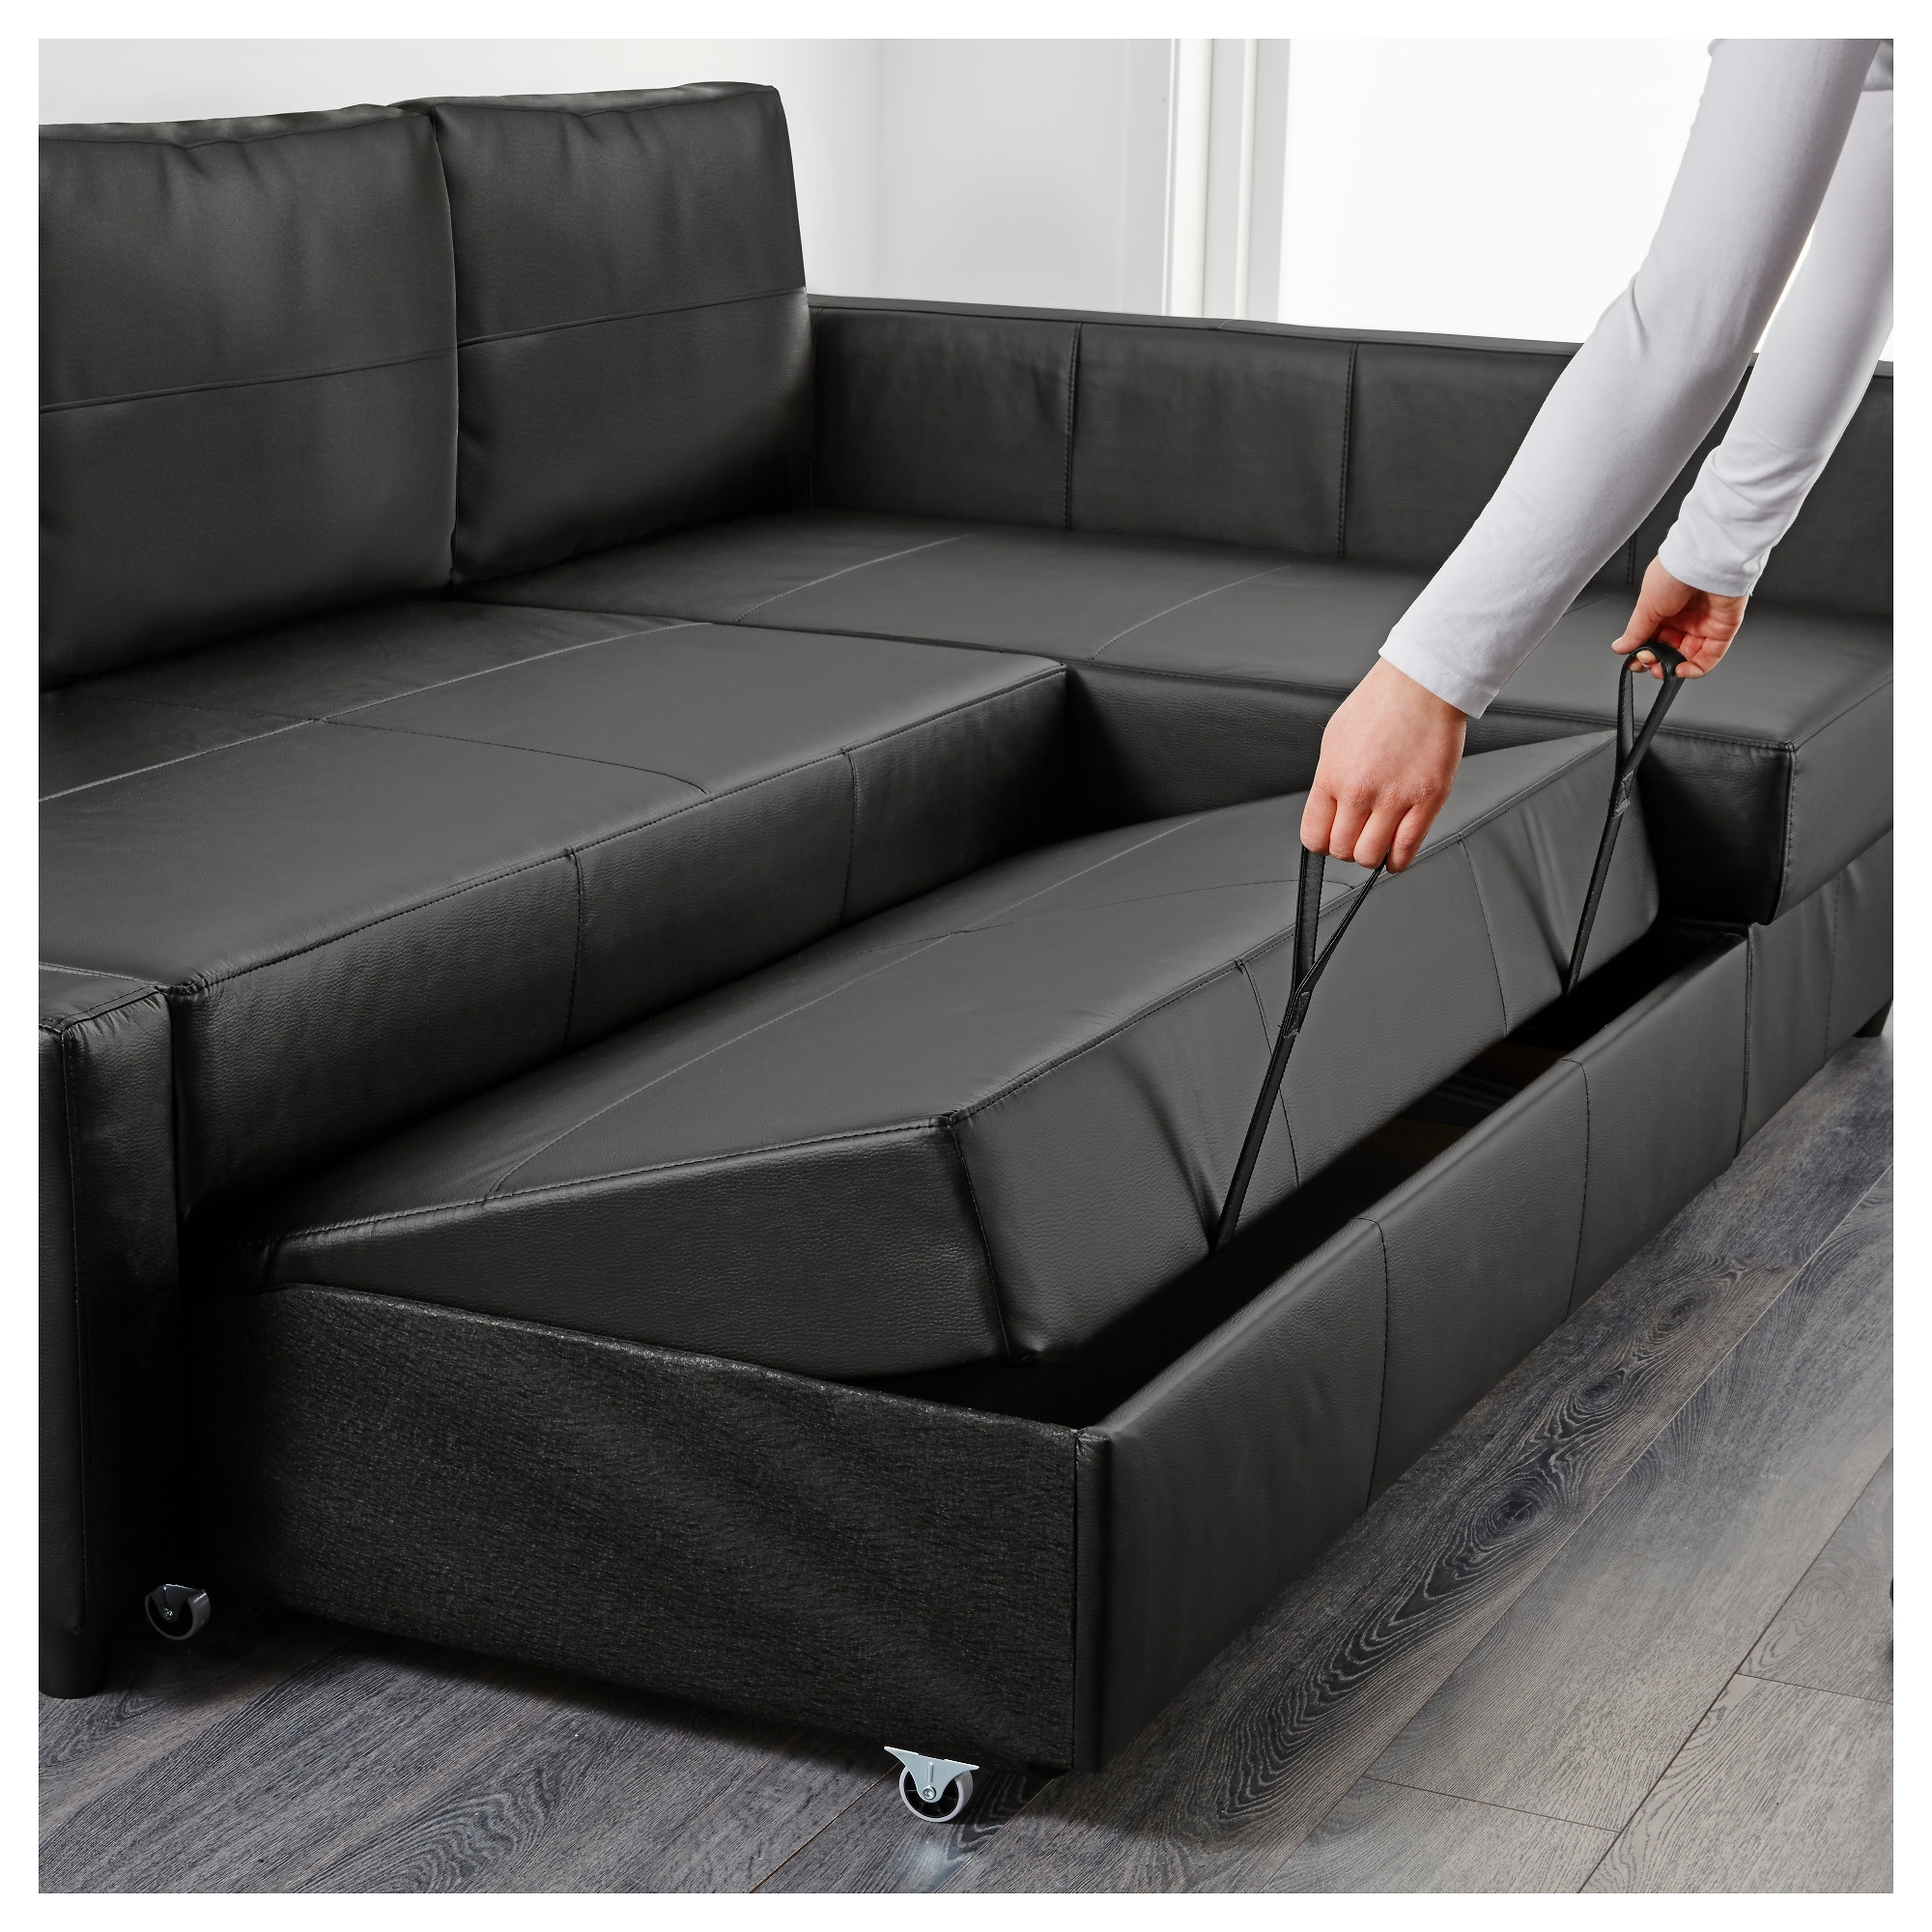 Friheten Corner Sofa Bed With Storage Bomstad Black – Ikea Regarding Most Recent Ikea Corner Sofas With Storage (View 4 of 20)